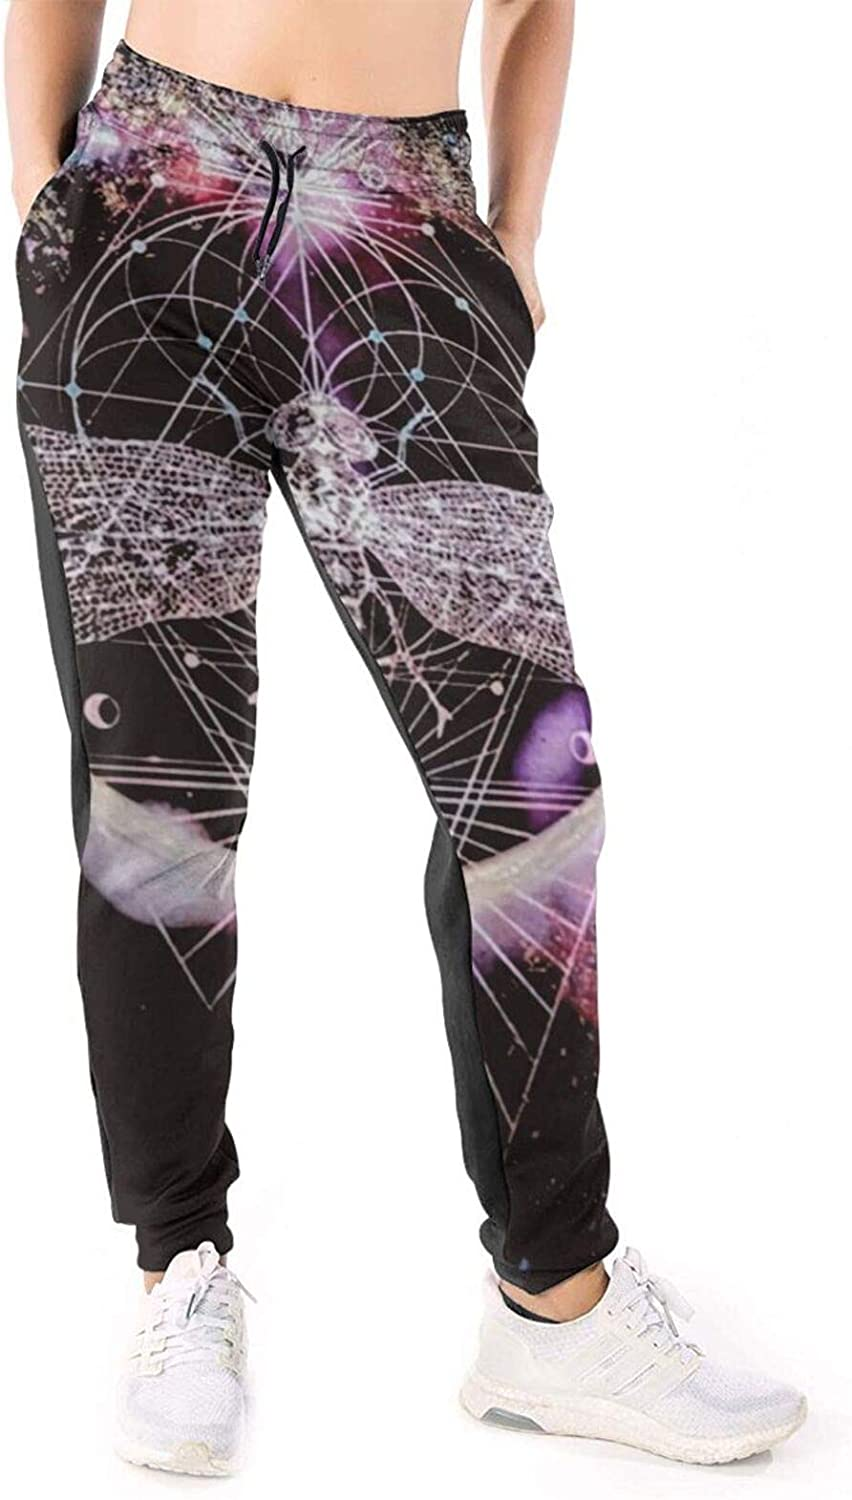 Women Joggers Pants Galaxy Dragonfly Geometric Rainbow Animal Athletic Sweatpants with Pockets Casual Trousers Baggy